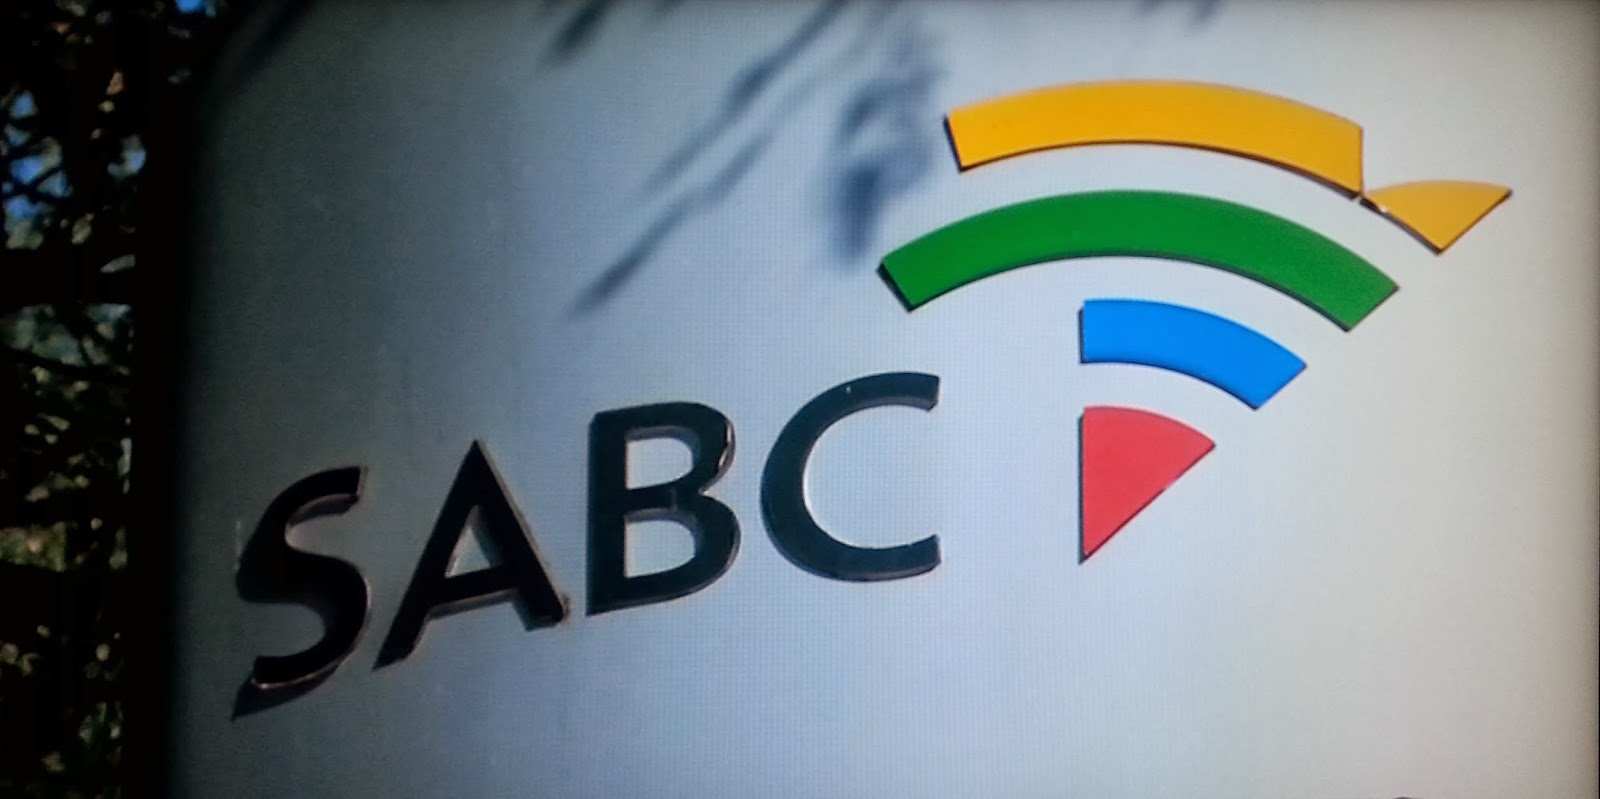 SABC Inquiry: DA calls for equitable election coverage for all major political parties